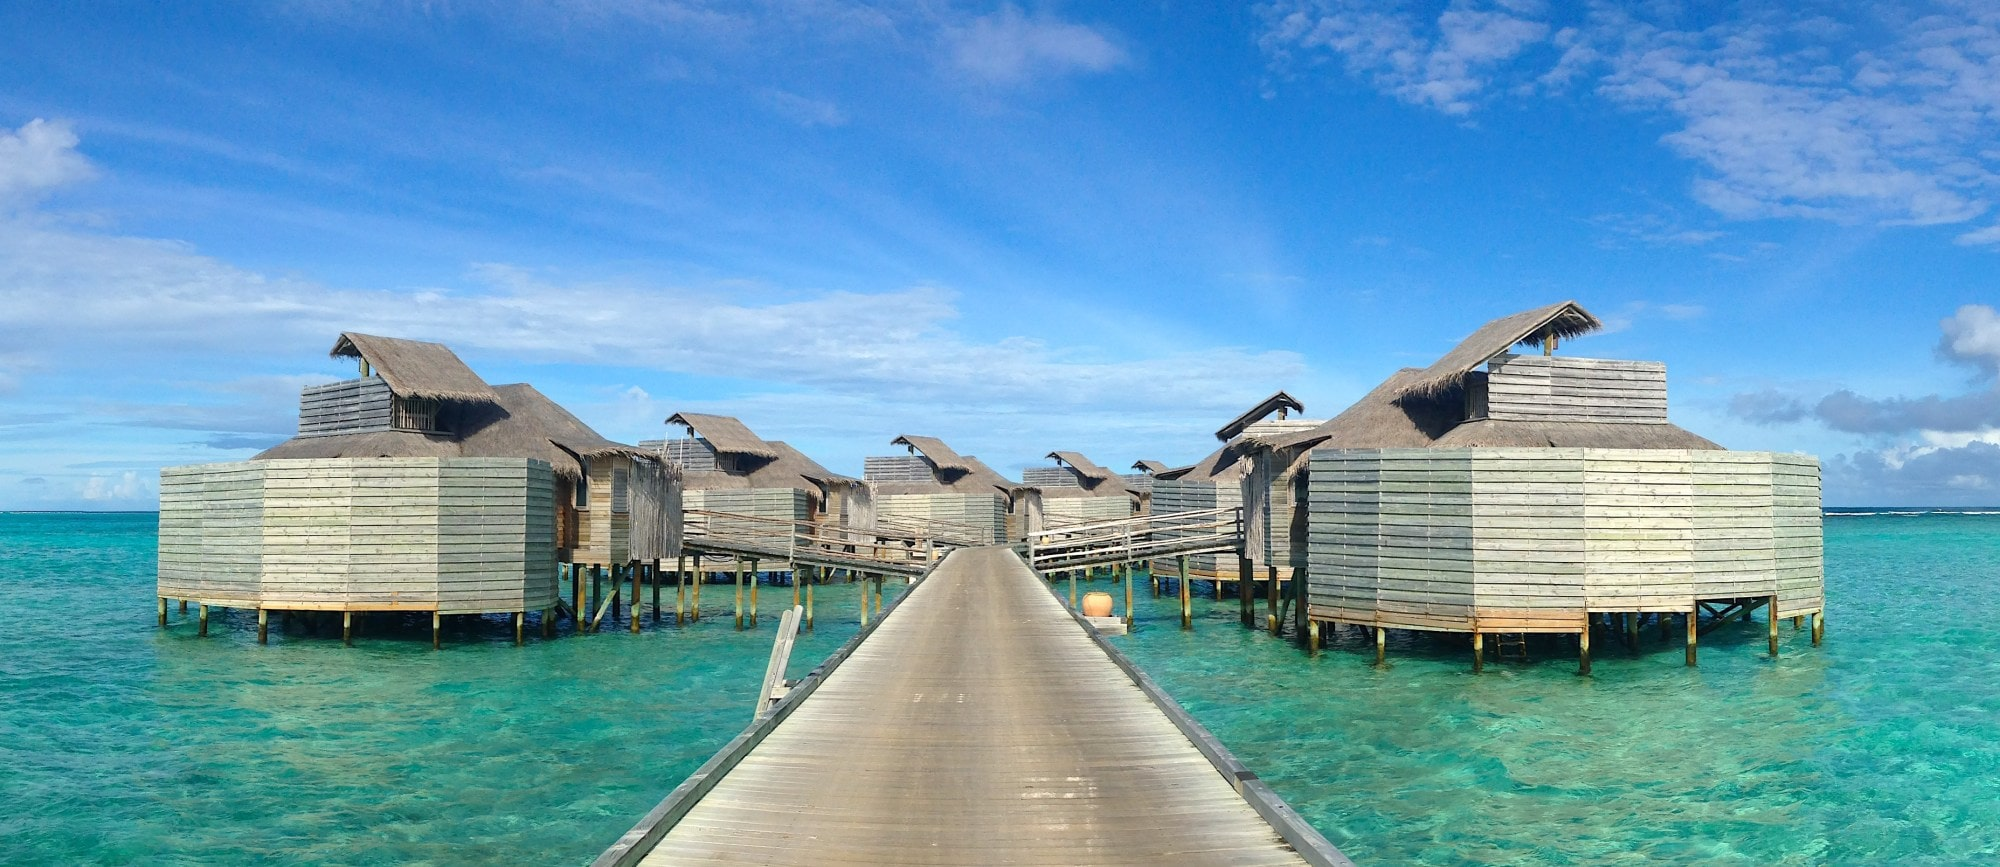 My first trip to the Maldives at Six Senses Laamu